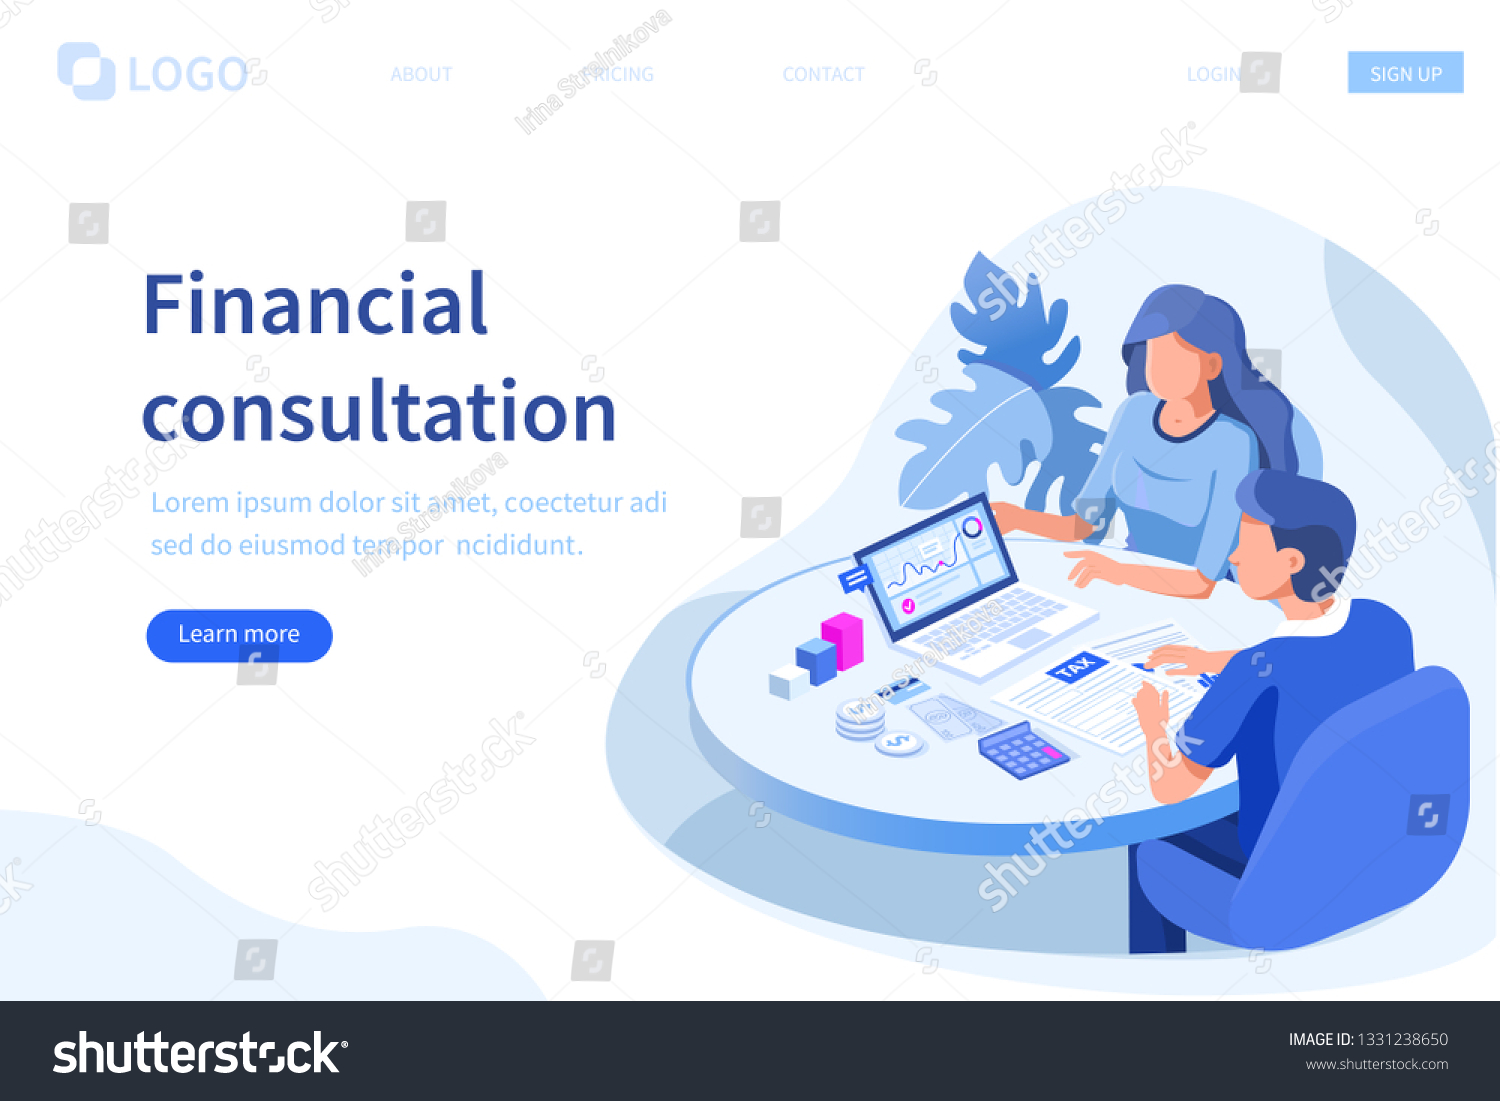 Financial consultation concept. Can use for web banner, infographics, hero images. Flat isometric vector illustration isolated on white background.